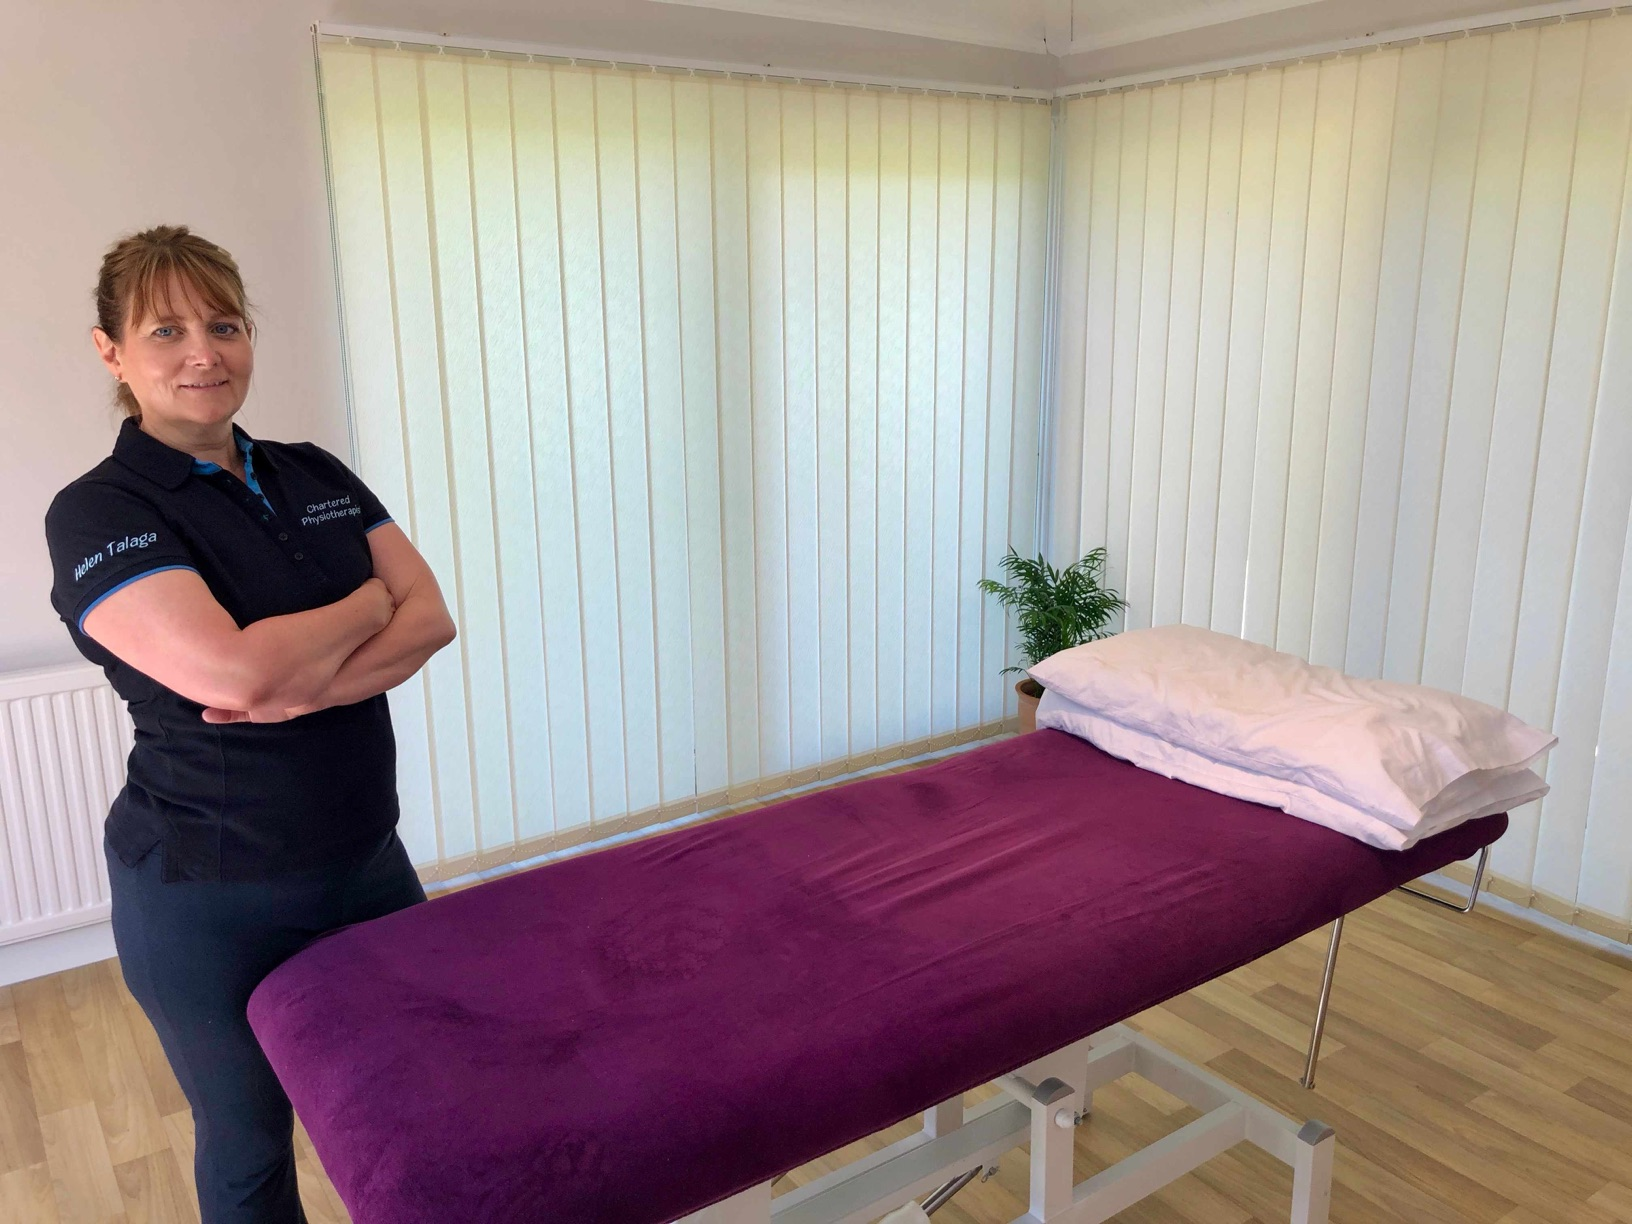 Helen Talaga standing next to a treatment bed